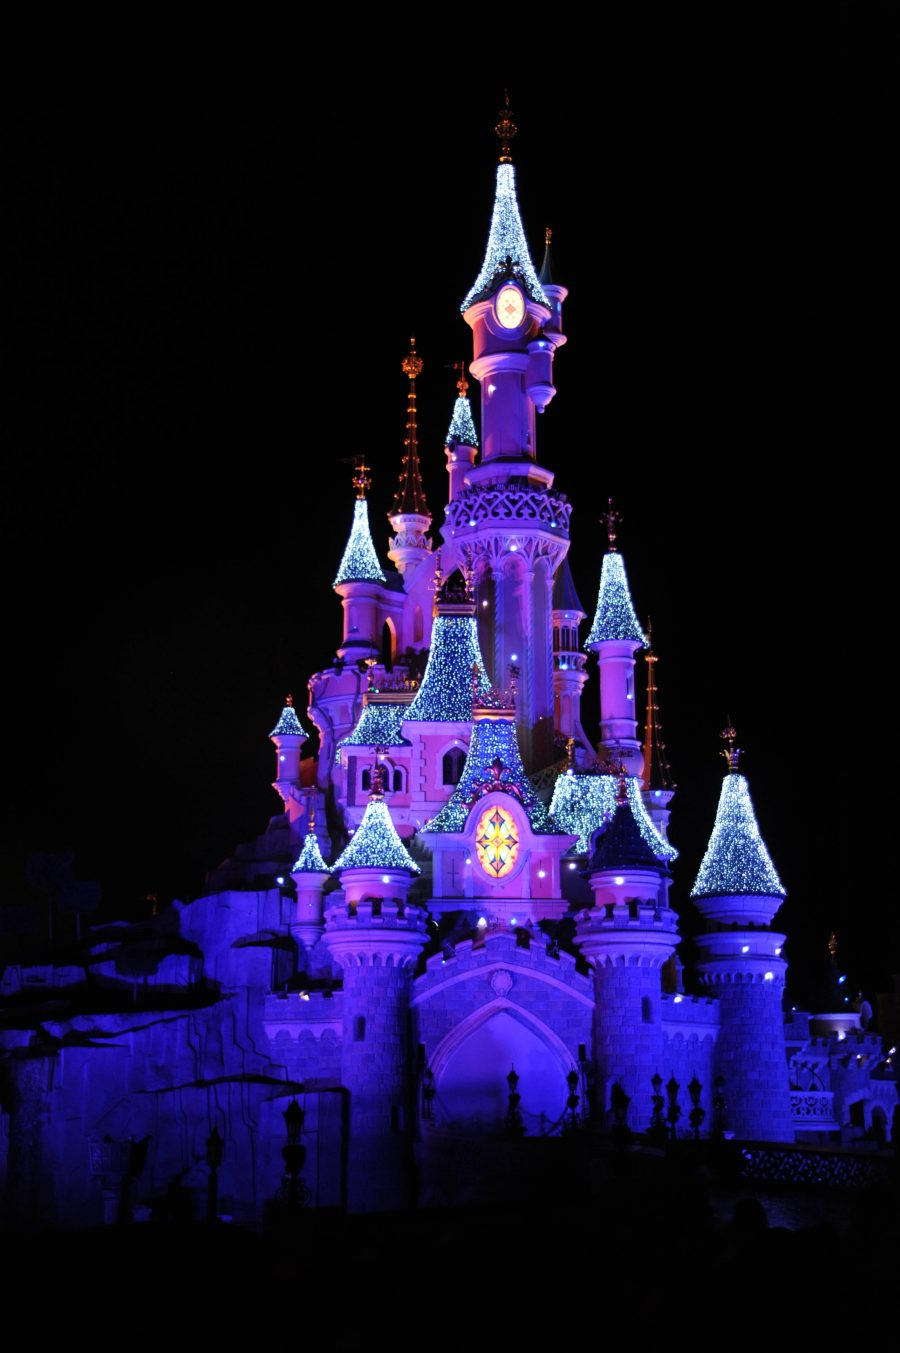 disneylandparis-7